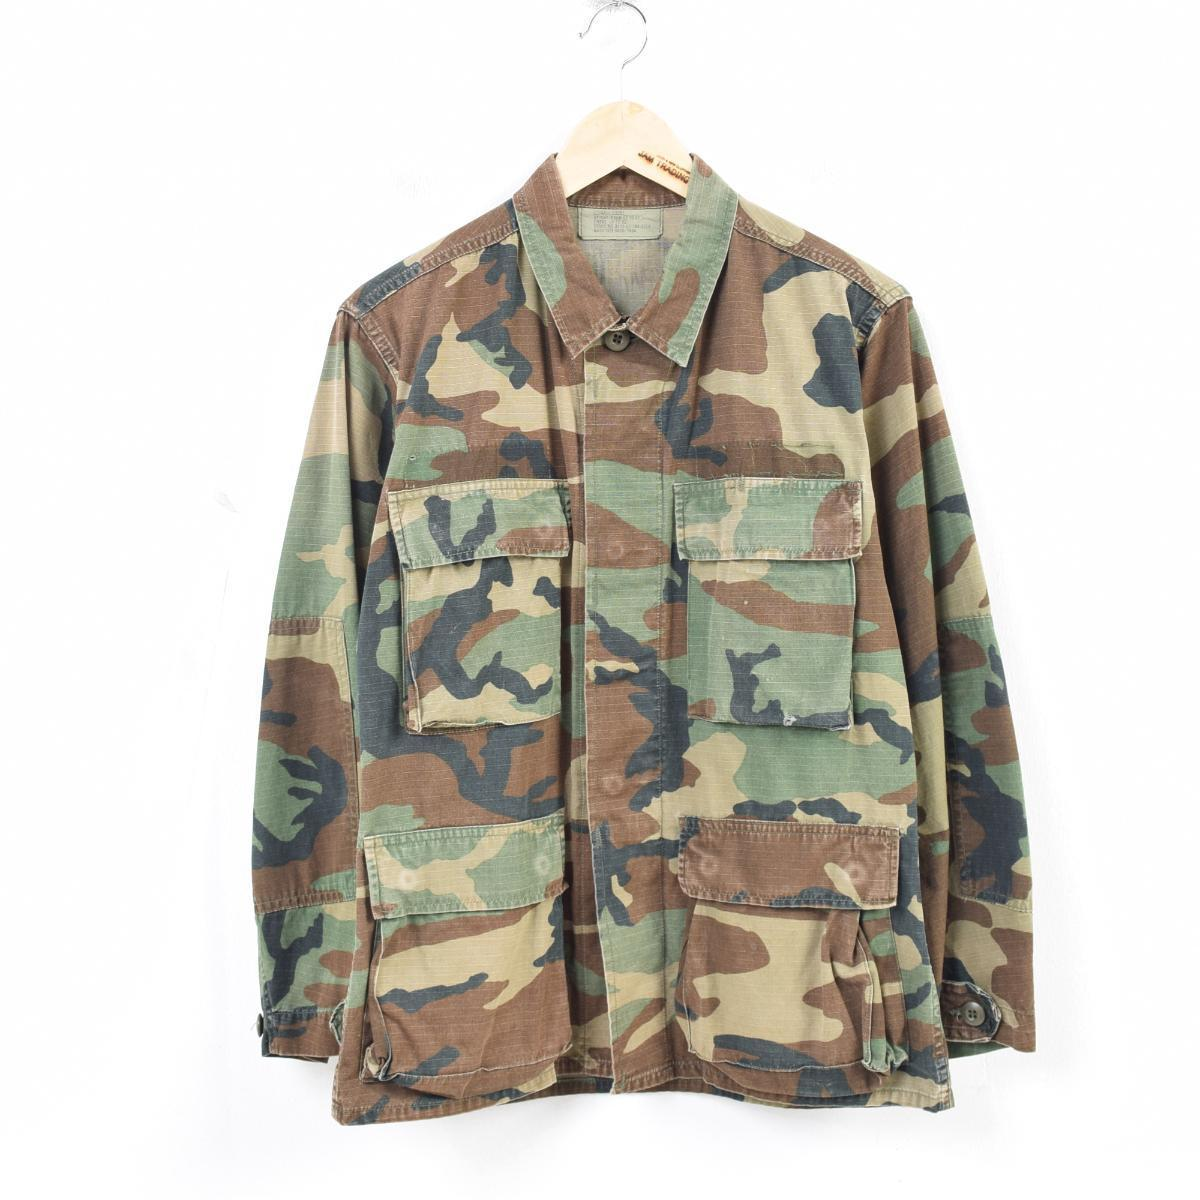 2b081e5684f85 Men S vintage /wau0441 for 88 years made in delivery of goods U.S. forces  true article Woodland duck camouflage B.D.U military shirt USA